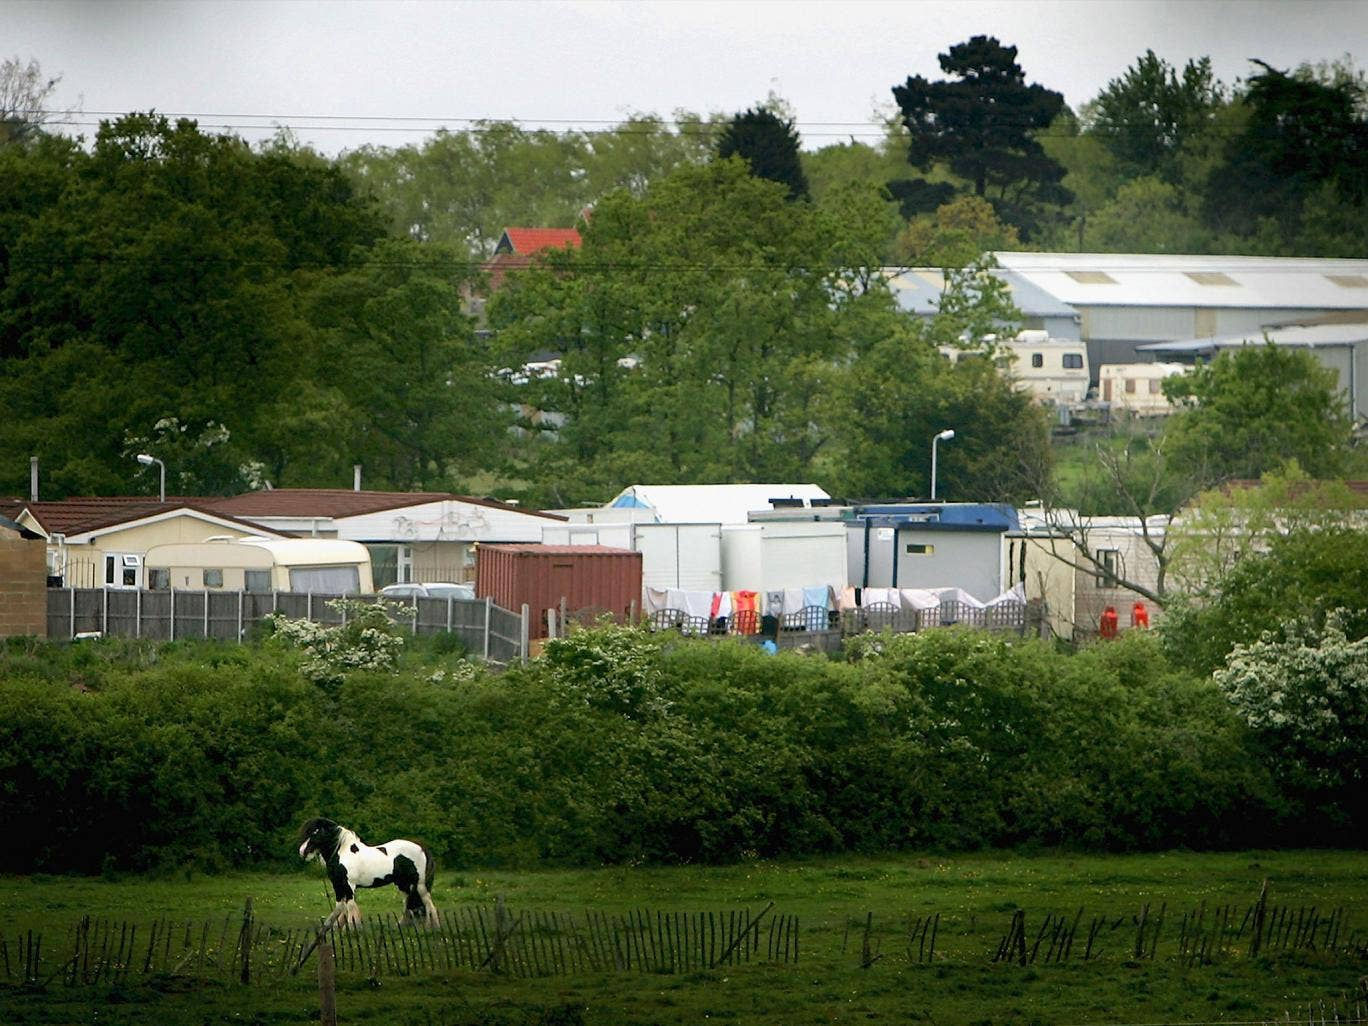 independent.co.uk - May Bulman - Gypsy and traveller families 'driven to the seas' as councils get permission to ban traveller sites